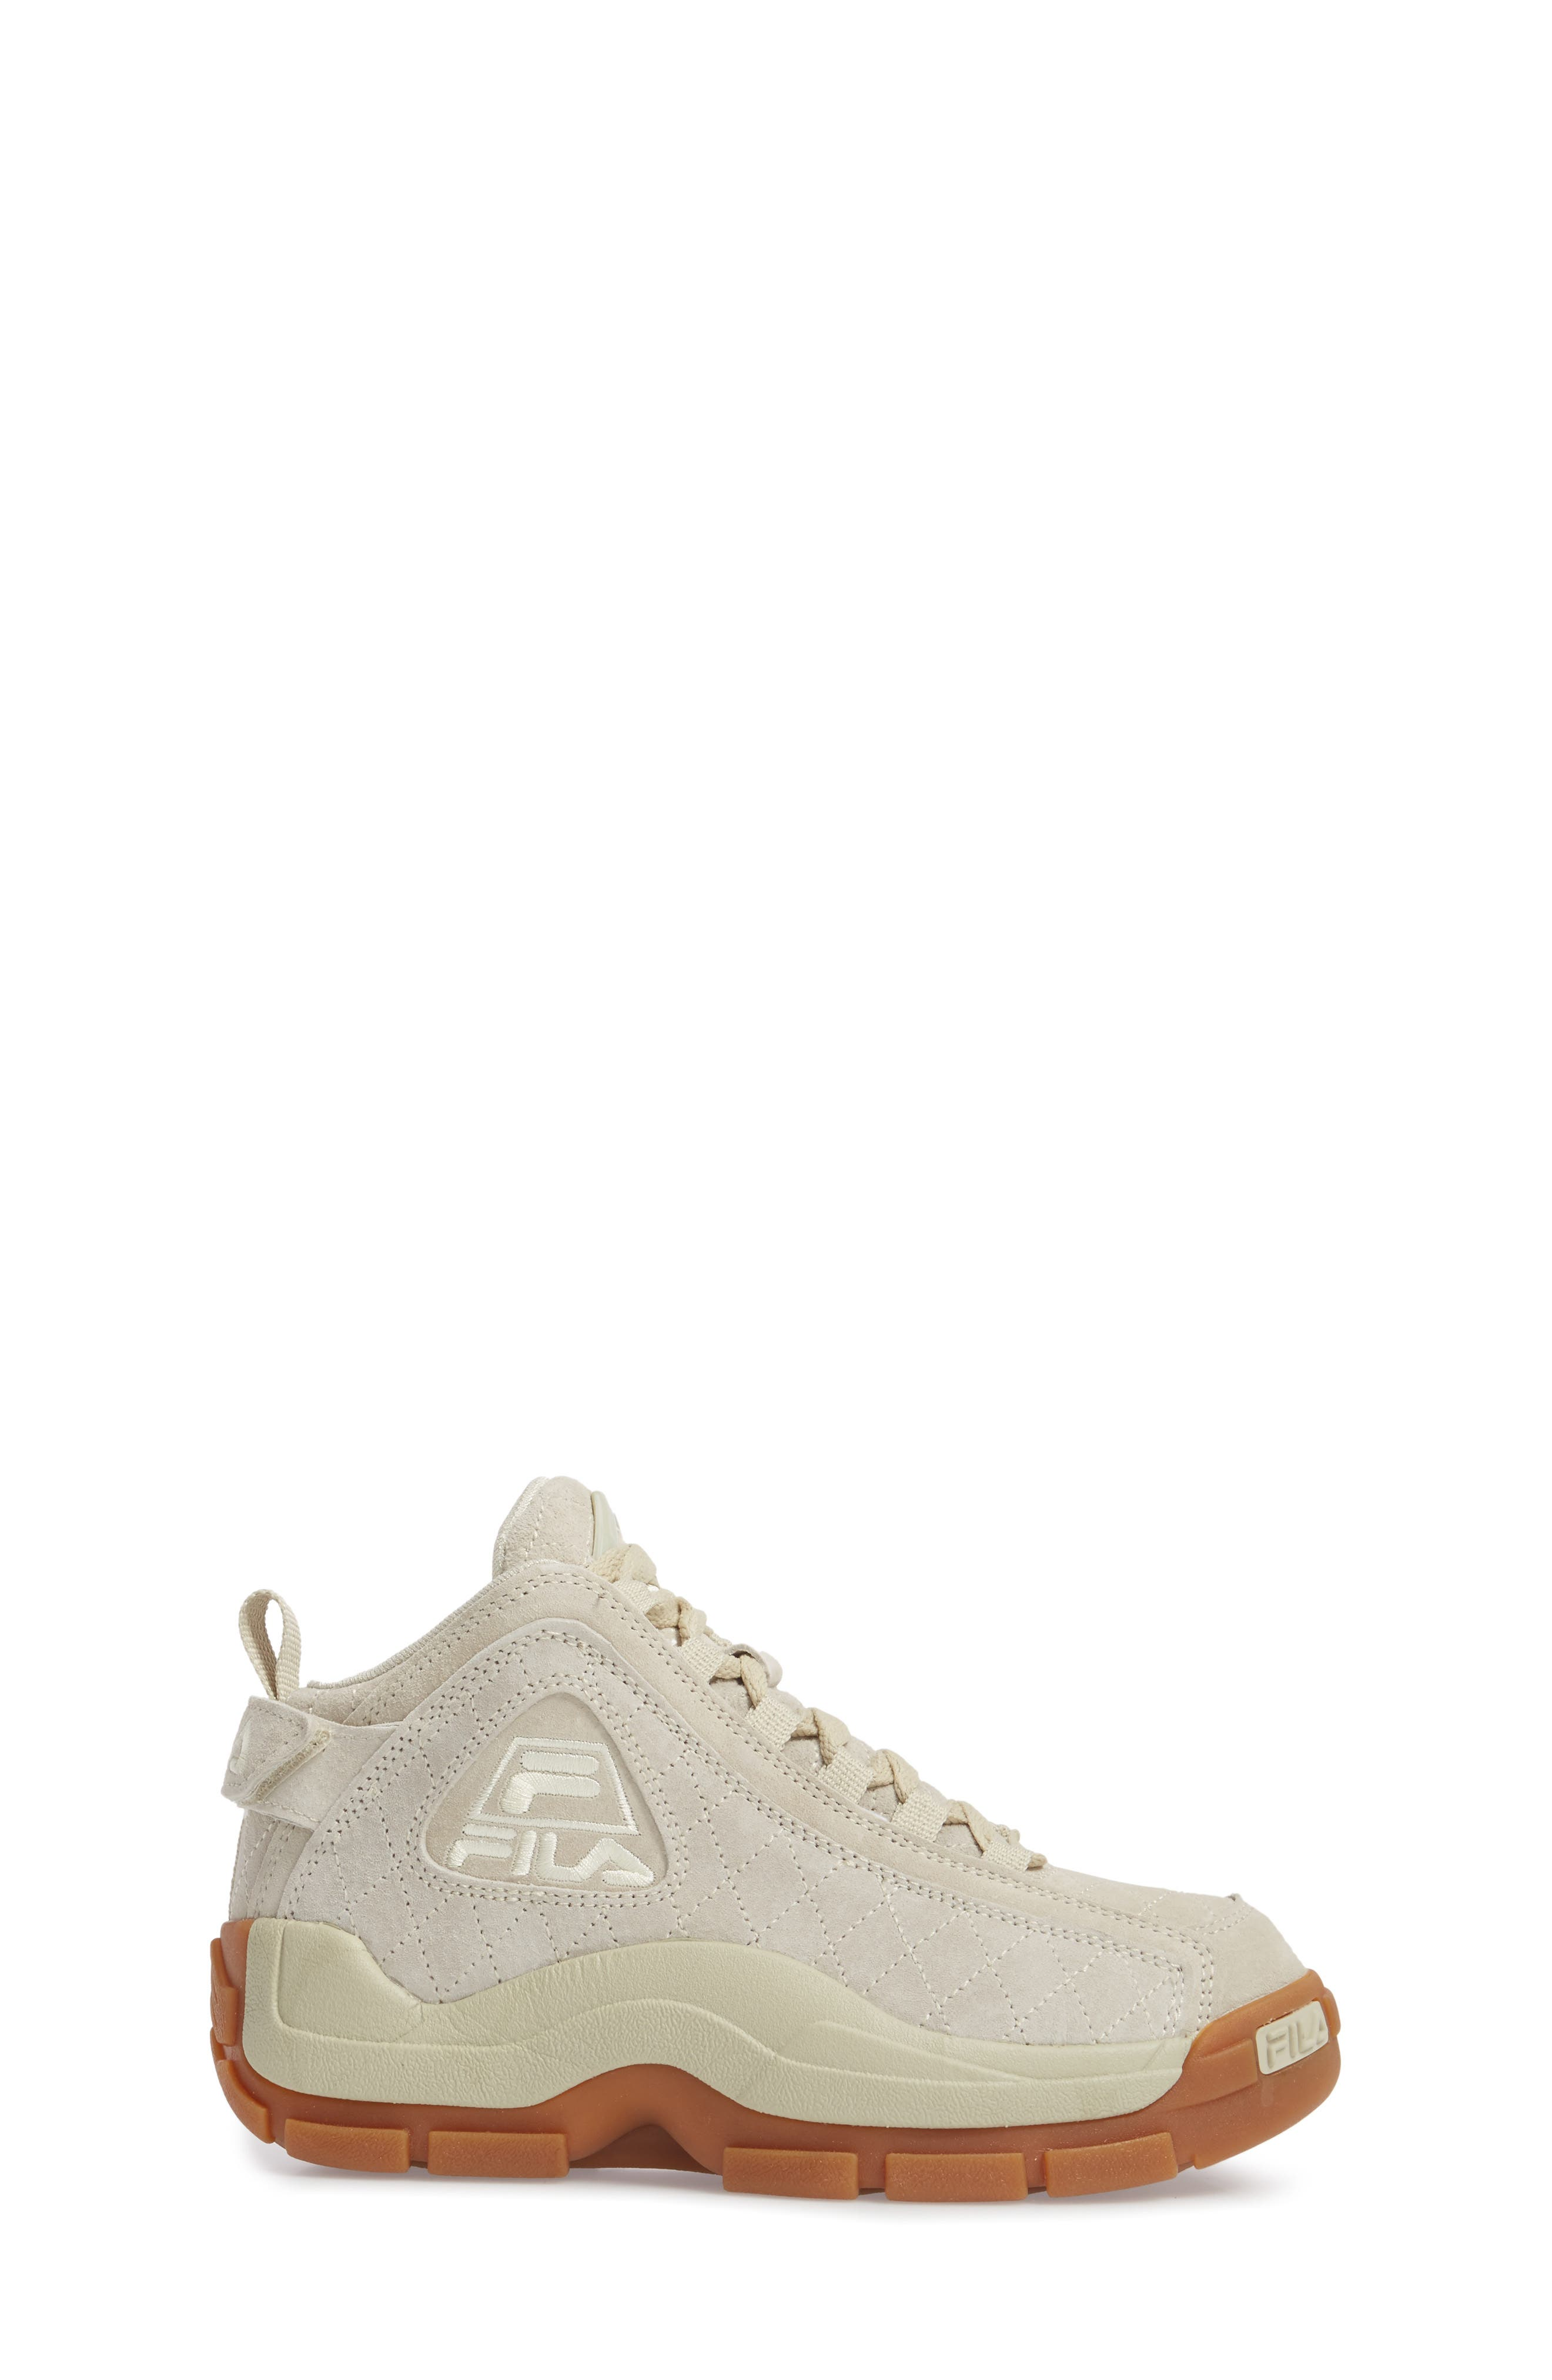 96 Quilted Mid-Top Sneaker,                             Alternate thumbnail 3, color,                             Cream/ Gum